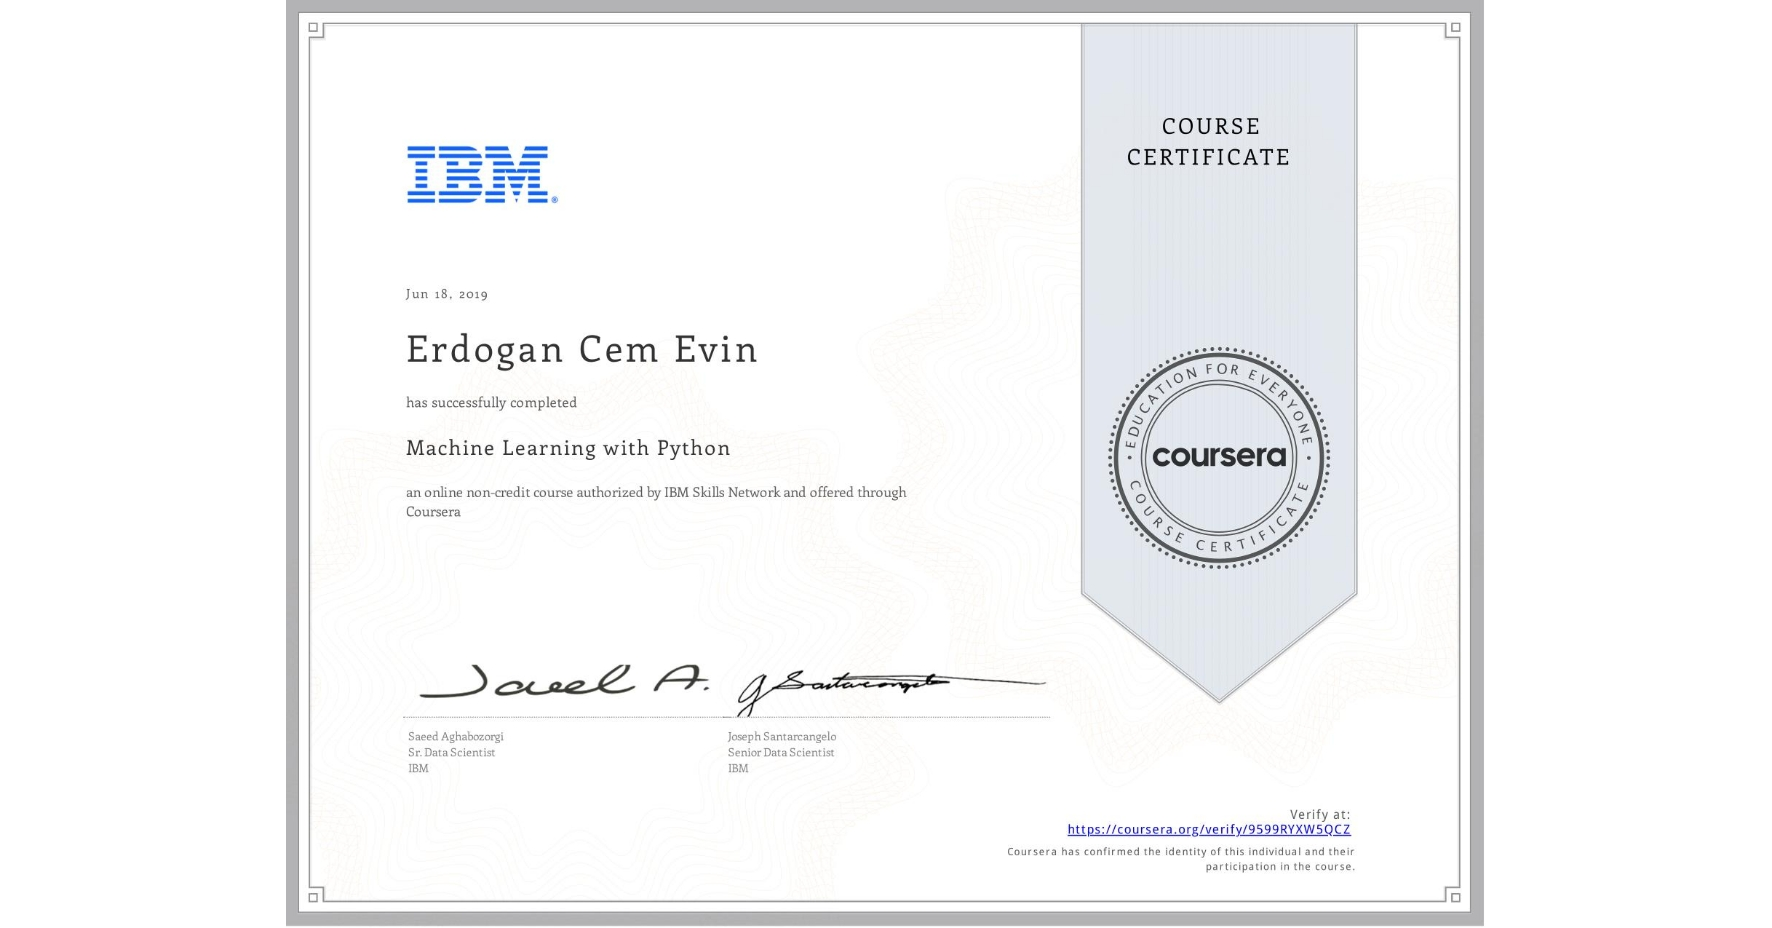 View certificate for Erdogan Cem  Evin, Machine Learning with Python, an online non-credit course authorized by IBM and offered through Coursera